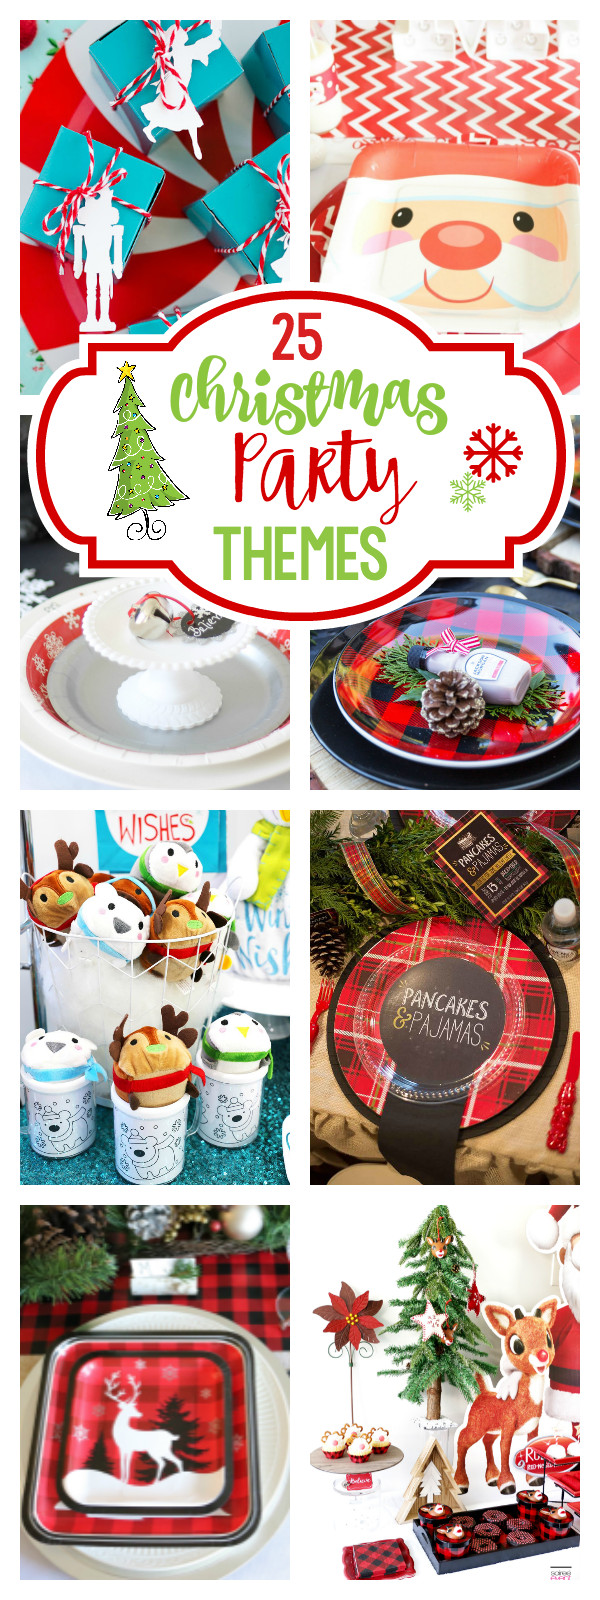 Christmas Party Ideas For Adults  25 Fun Christmas Party Theme Ideas – Fun Squared